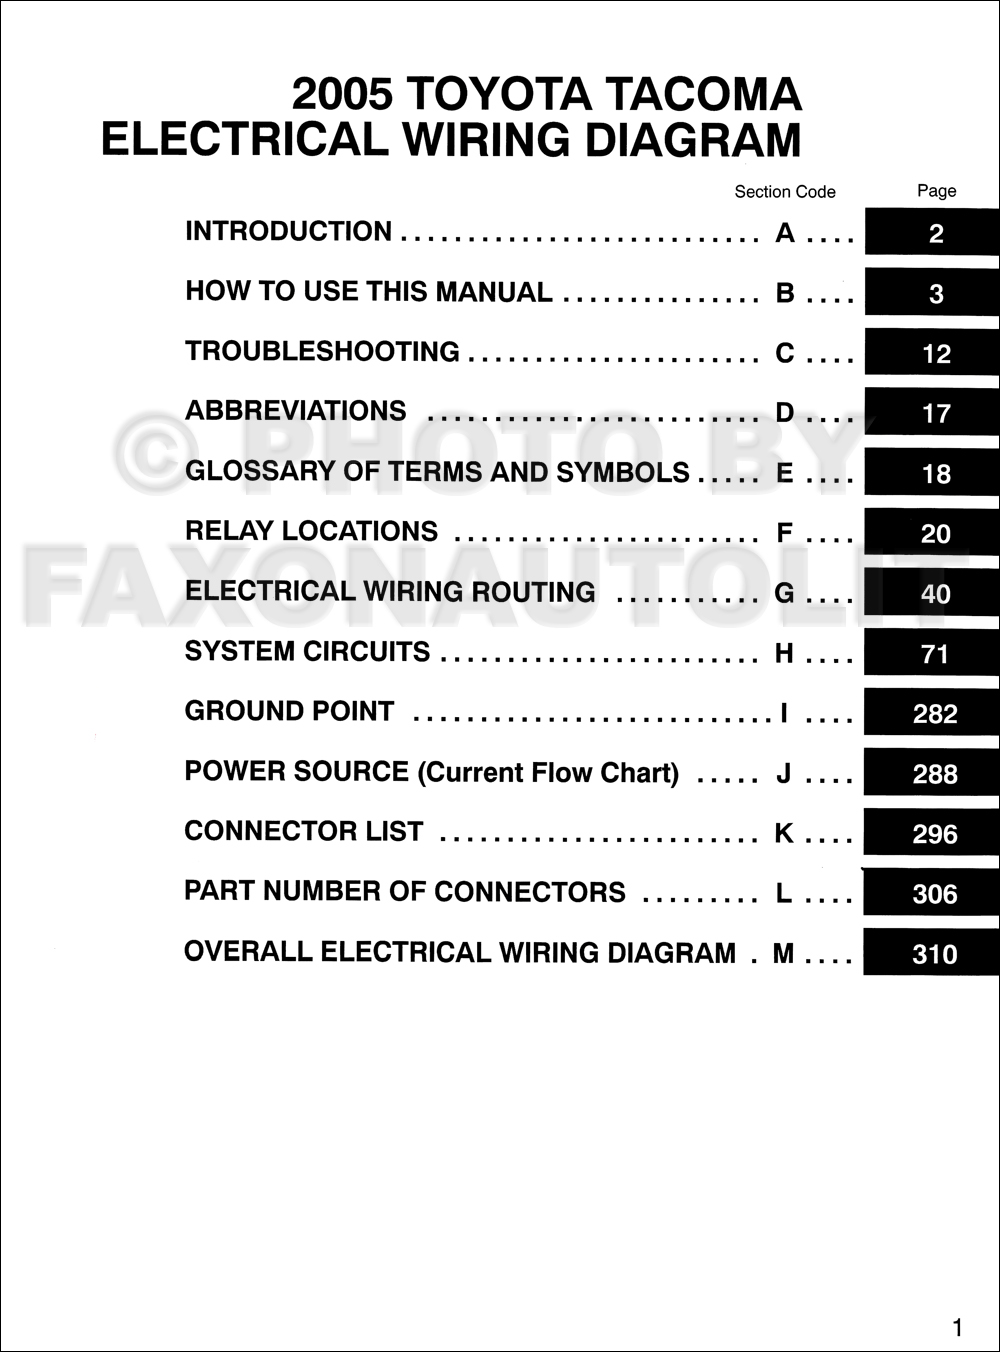 2005ToyotaTacomaOWD TOC 2005 toyota tacoma pickup wiring diagram manual original 2005 toyota tacoma wiring diagram at soozxer.org